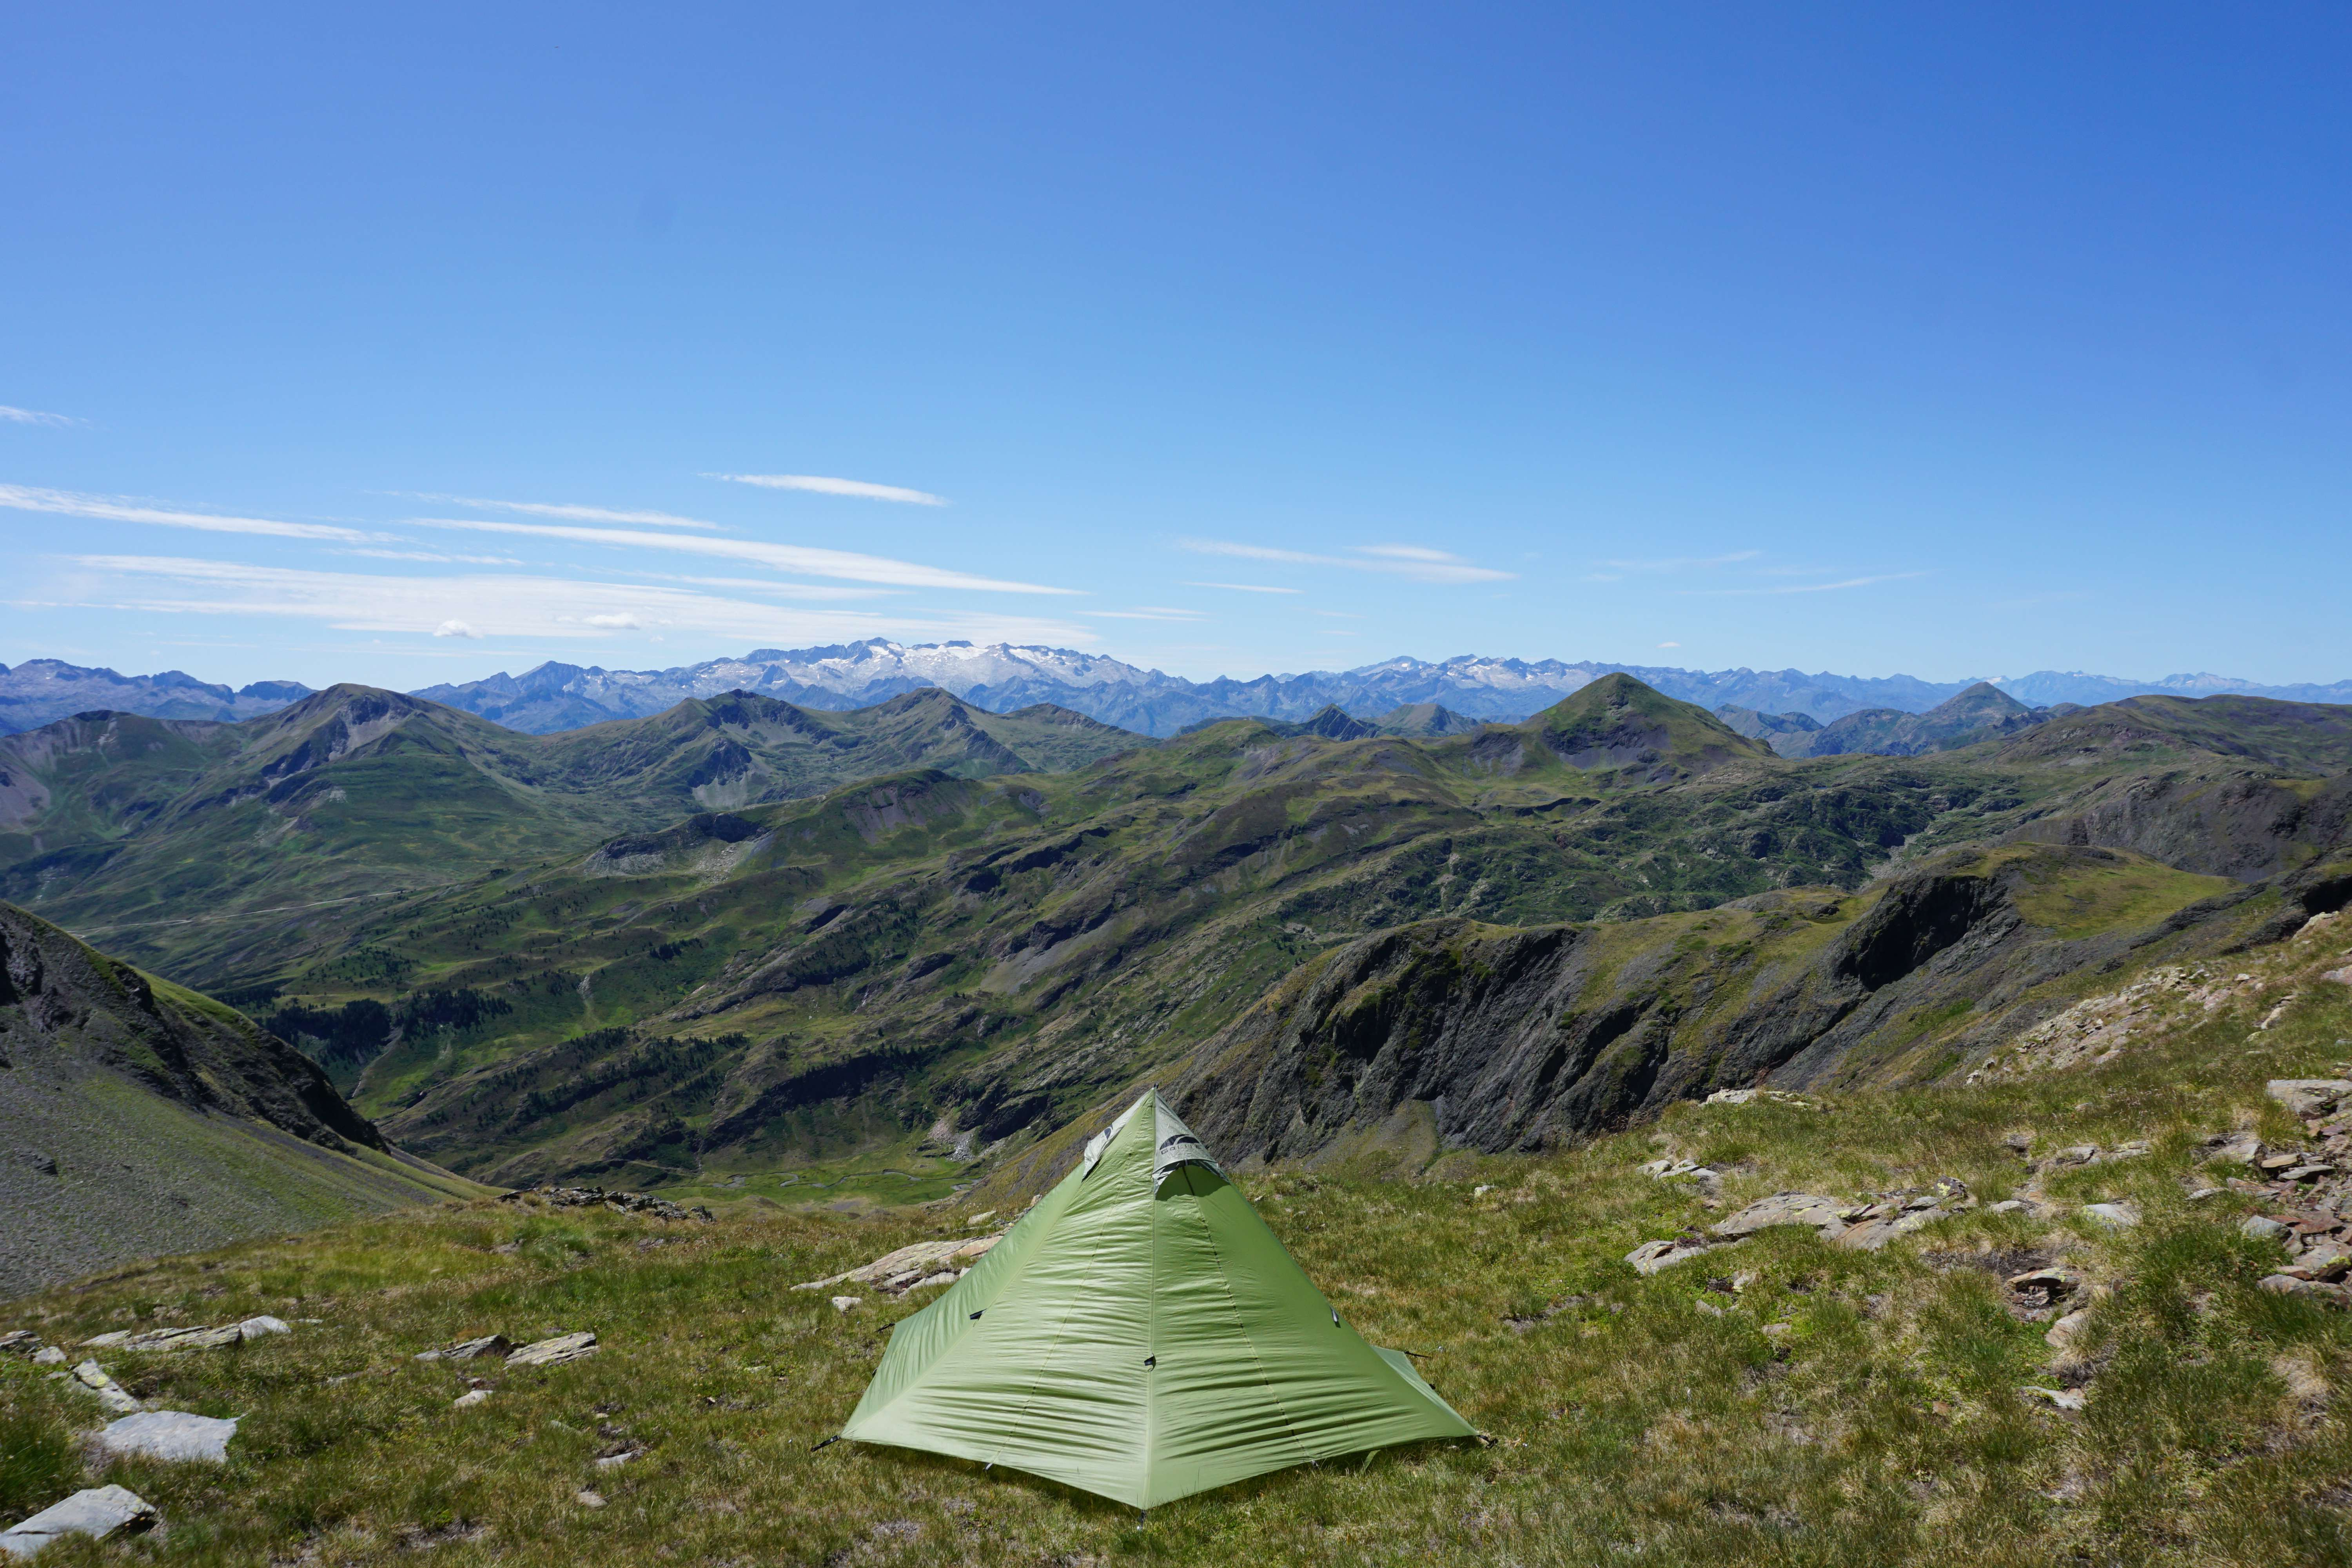 Triangular go light tent pitched on the edge of a cliff infront of large mountains